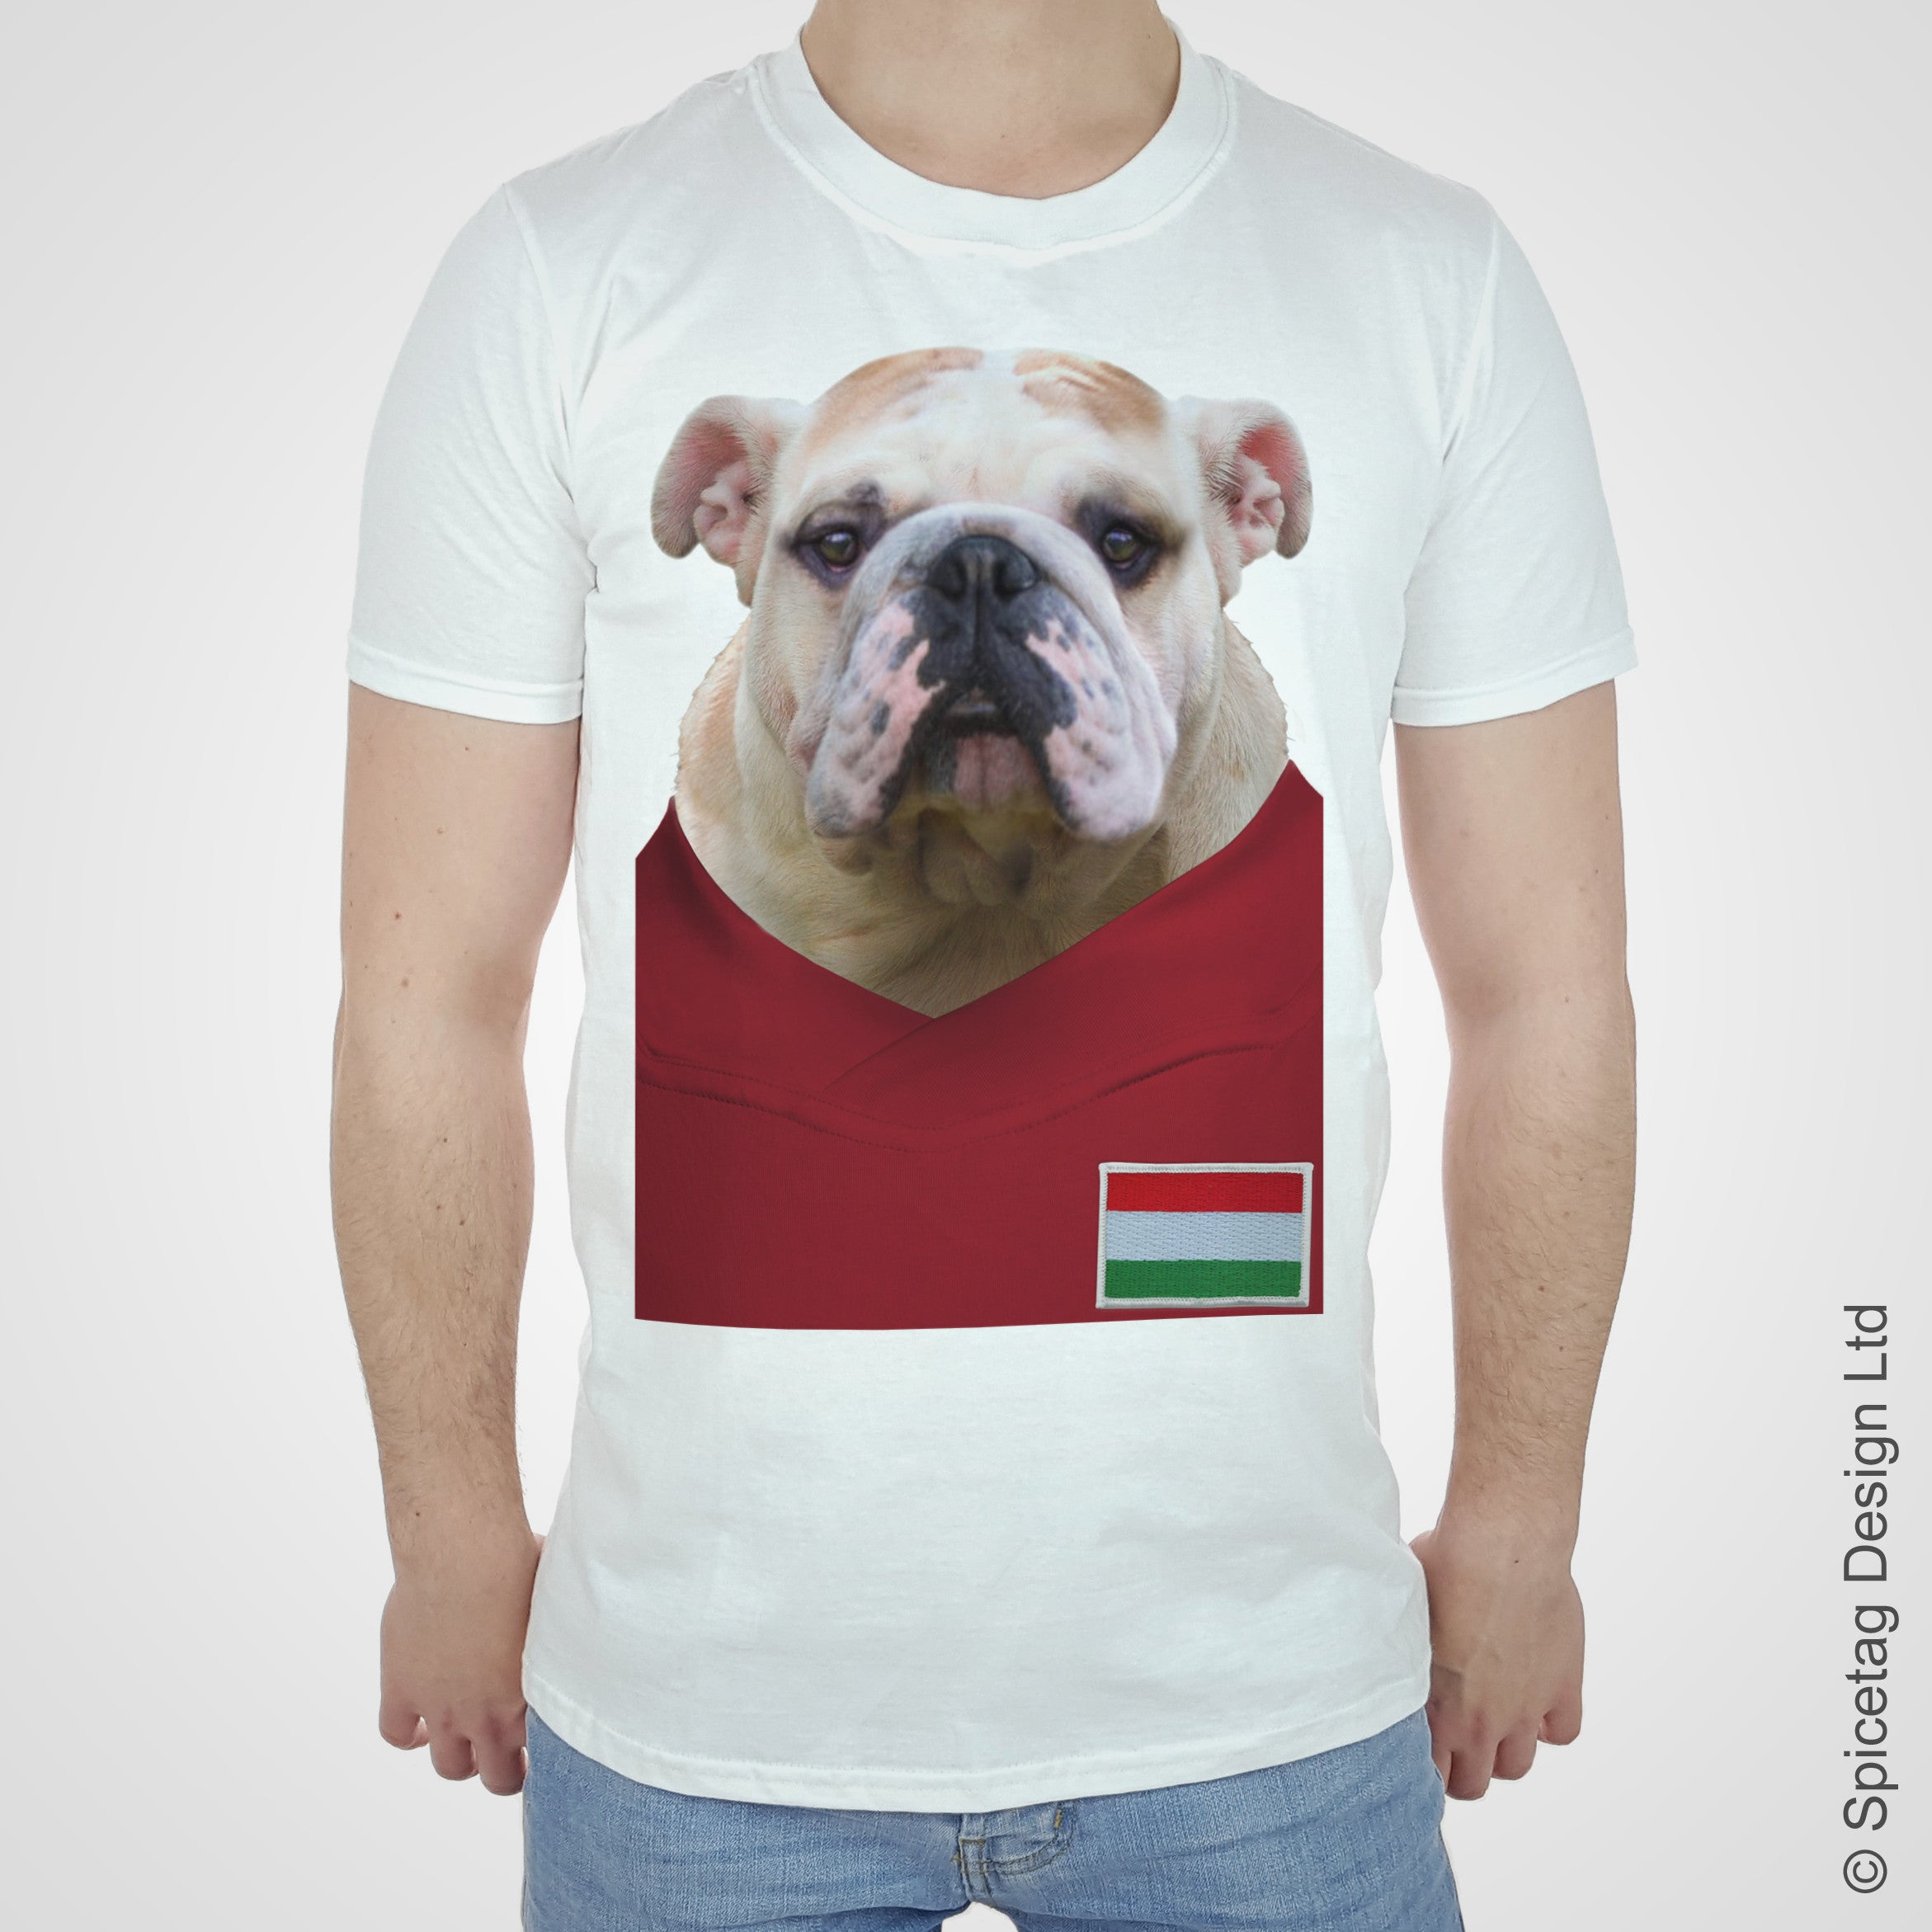 Hungary Football Bulldog T-shirt